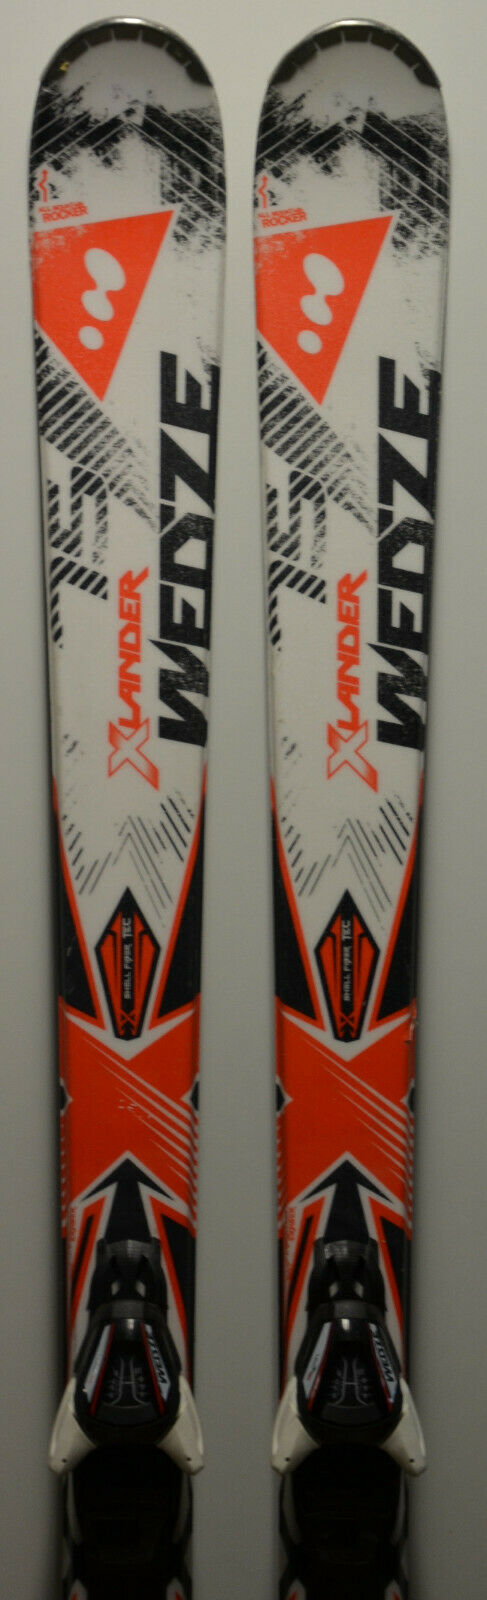 Skis  parabolic used WED'ZE Xlander 75 + Bindings - 68 7 8in  quality assurance